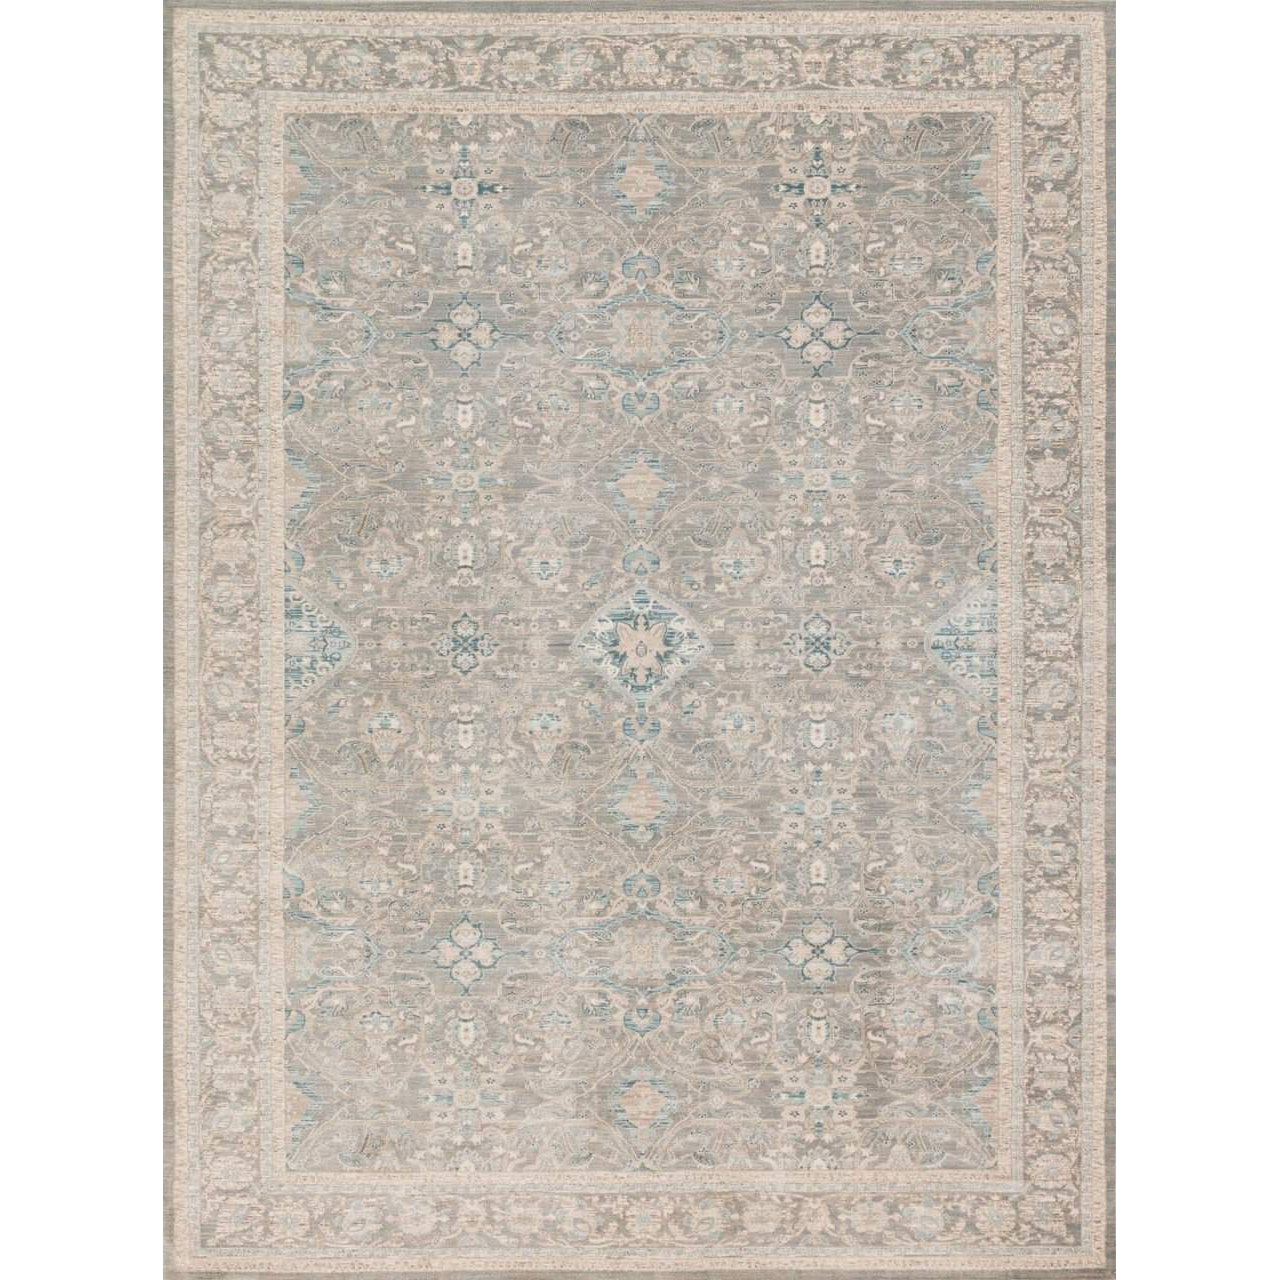 Joanna Gaines Magnolia Home Rug - Ella Rose Collection - Steel / Steel